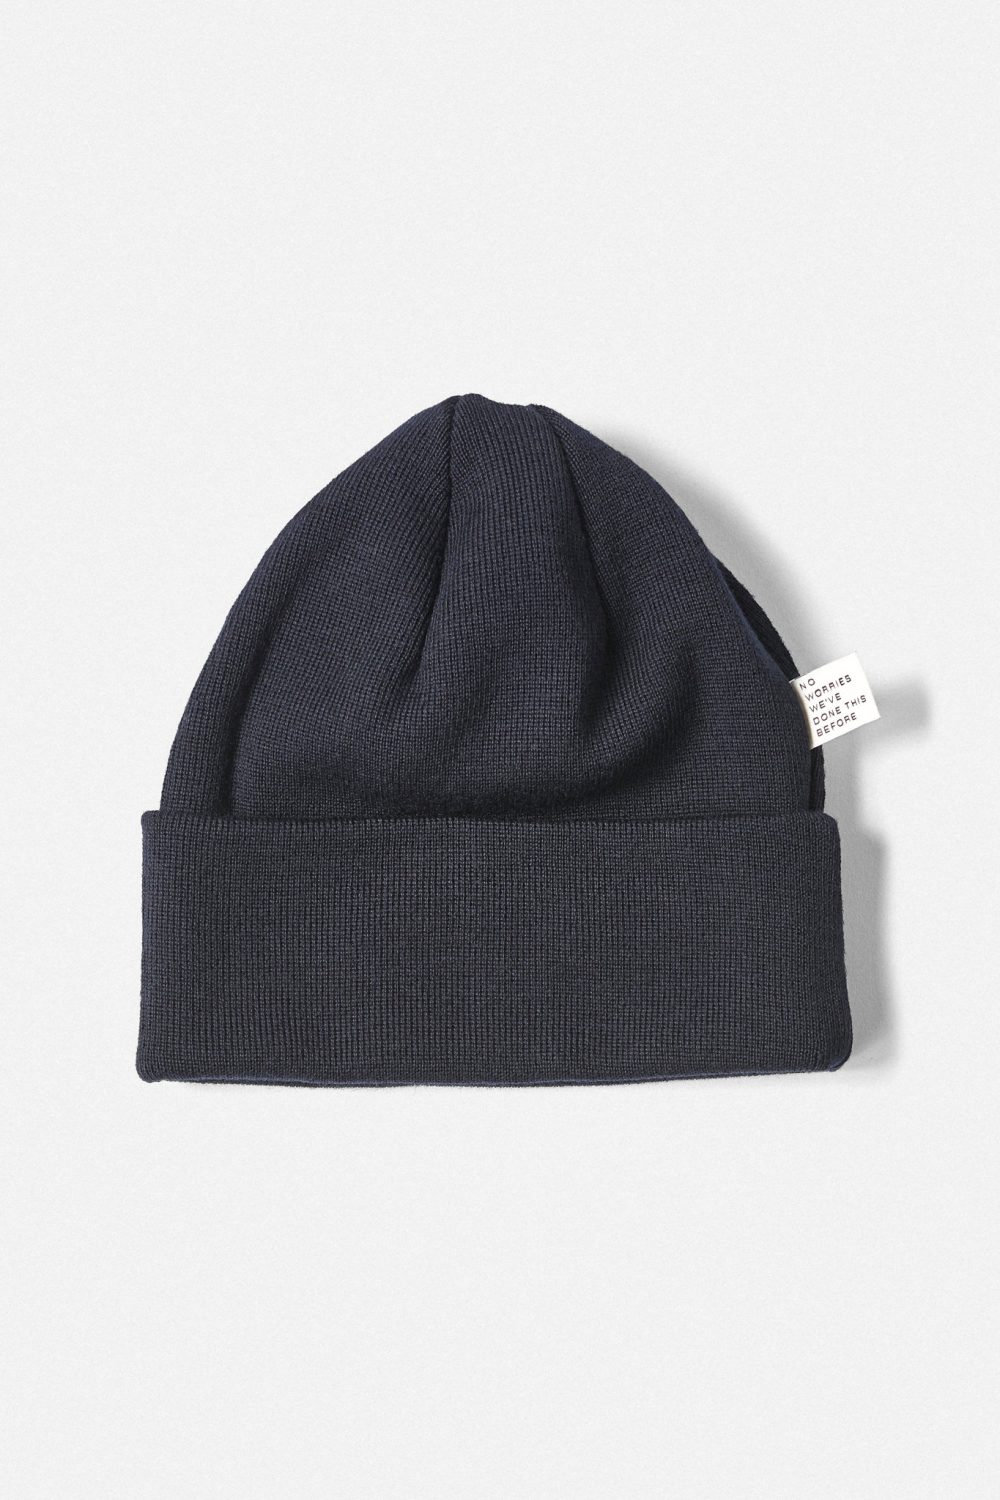 Permanents Beanie – A Kind of Guise 850280a4f0f3